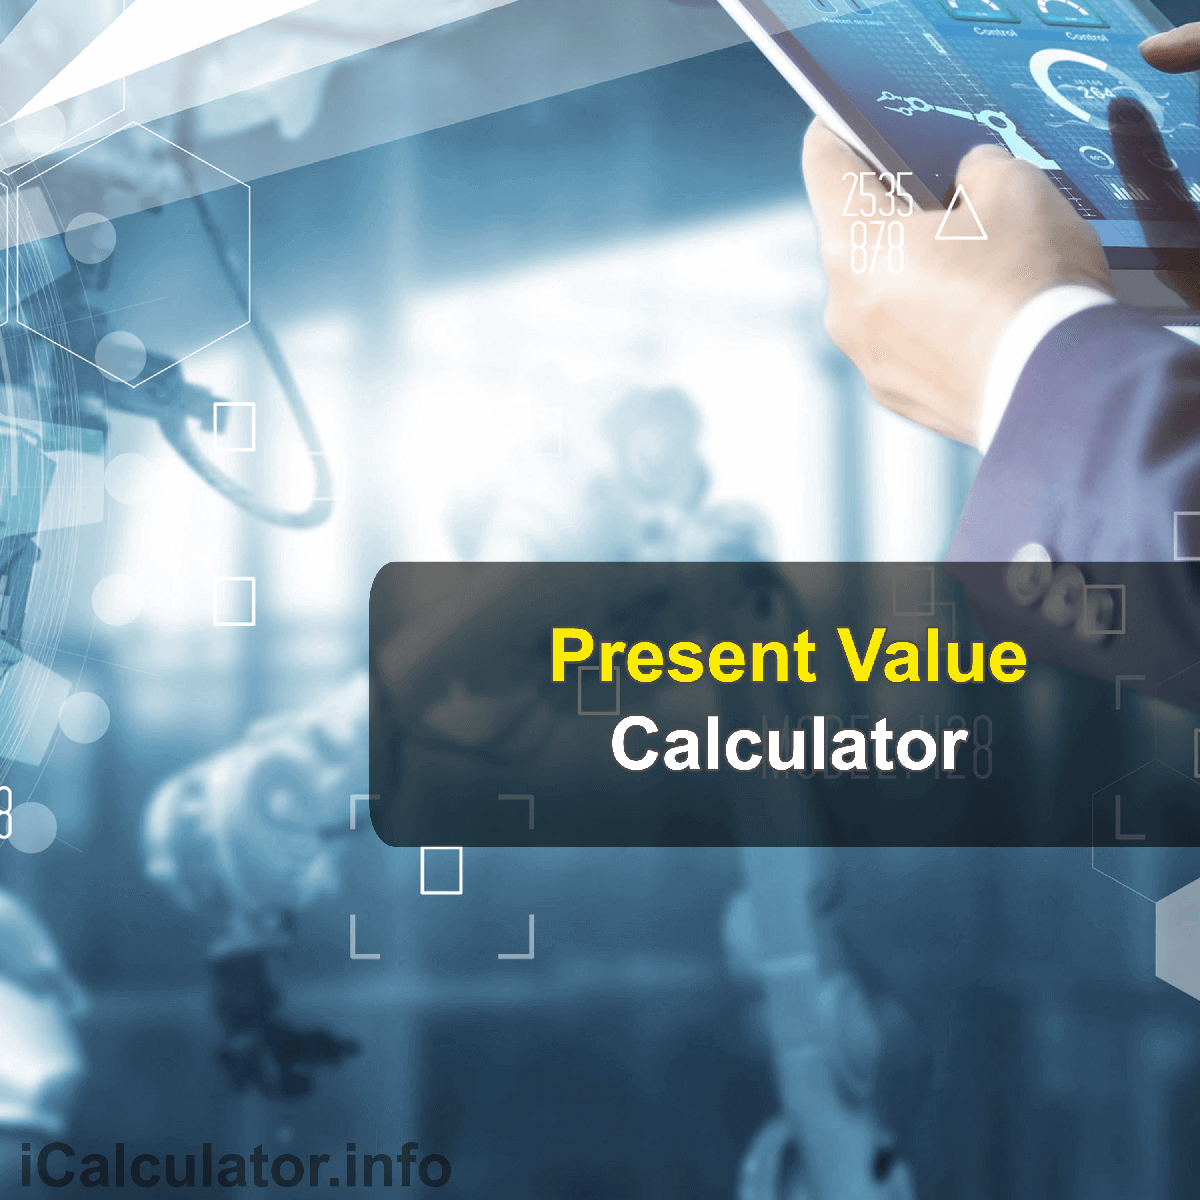 Present Value of a Future SumCalculator. This image provides details of how to calculate the Present Value of a Future Sum using a good calculator, a pen and notepad. By using the Present Value of a Future Sum formula, the Present Value of a Future Sum Calculator provides acalculation of the present value of a future sum on money using known interest rate of an investment and period of the investment.